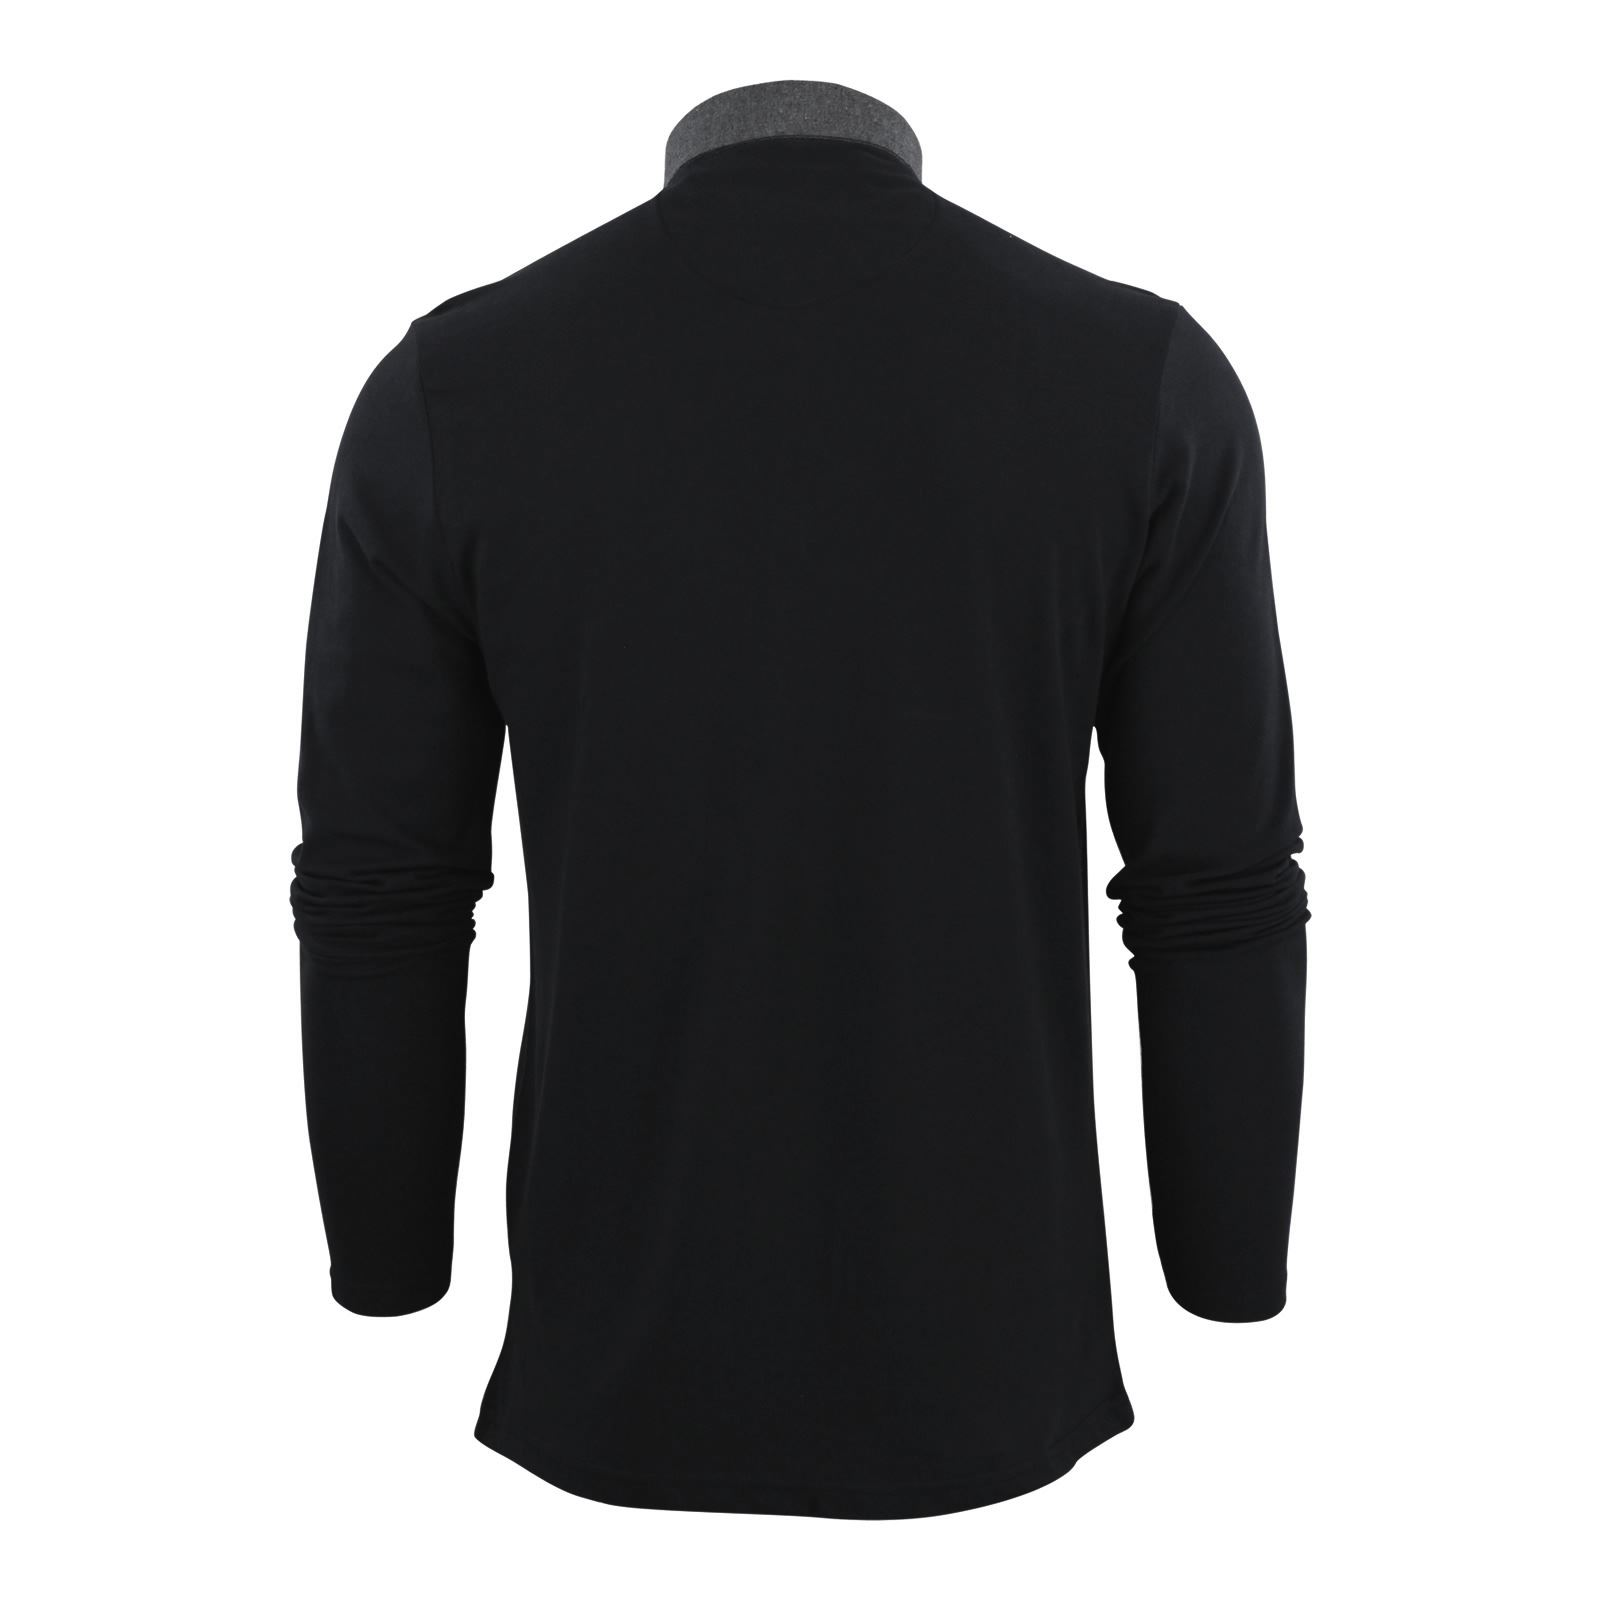 Mens-Polo-T-Shirt-Brave-Soul-Hera-Cotton-Long-Sleeve-Casual-Top thumbnail 36